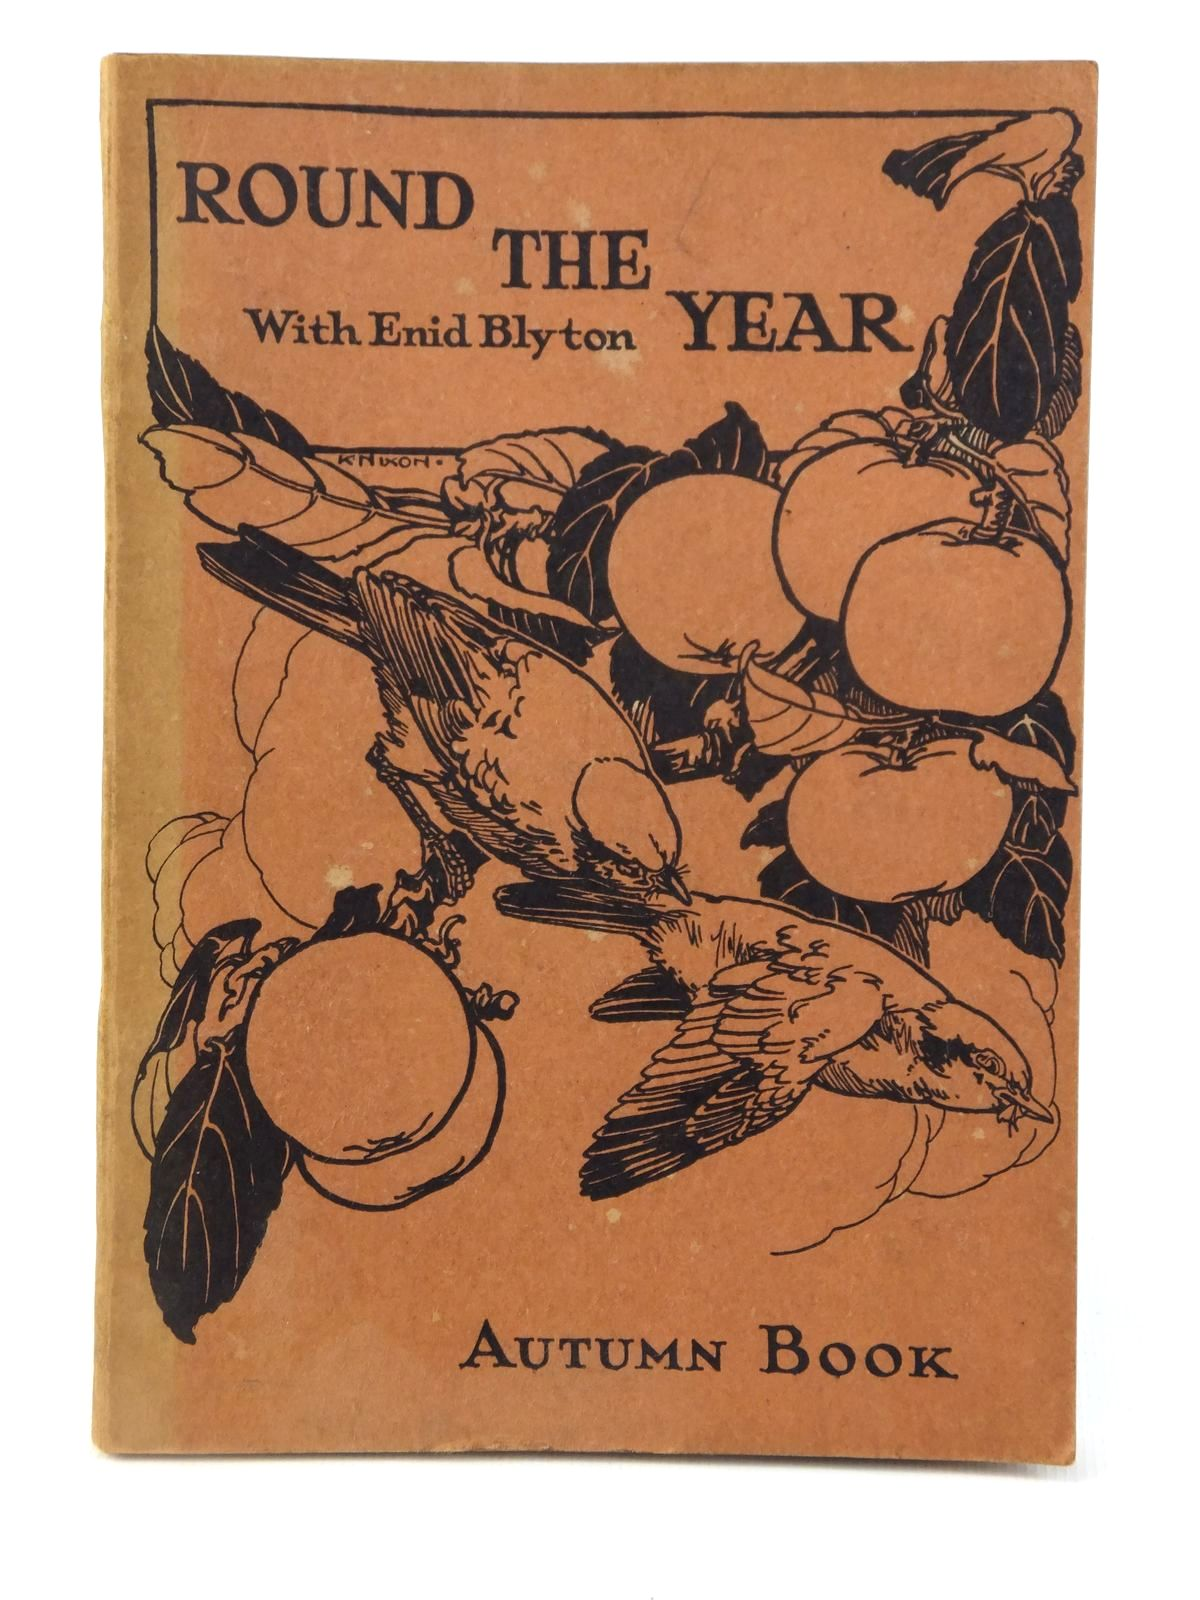 Photo of ROUND THE YEAR WITH ENID BLYTON - AUTUMN BOOK written by Blyton, Enid published by Evans Brothers Limited (STOCK CODE: 2122090)  for sale by Stella & Rose's Books